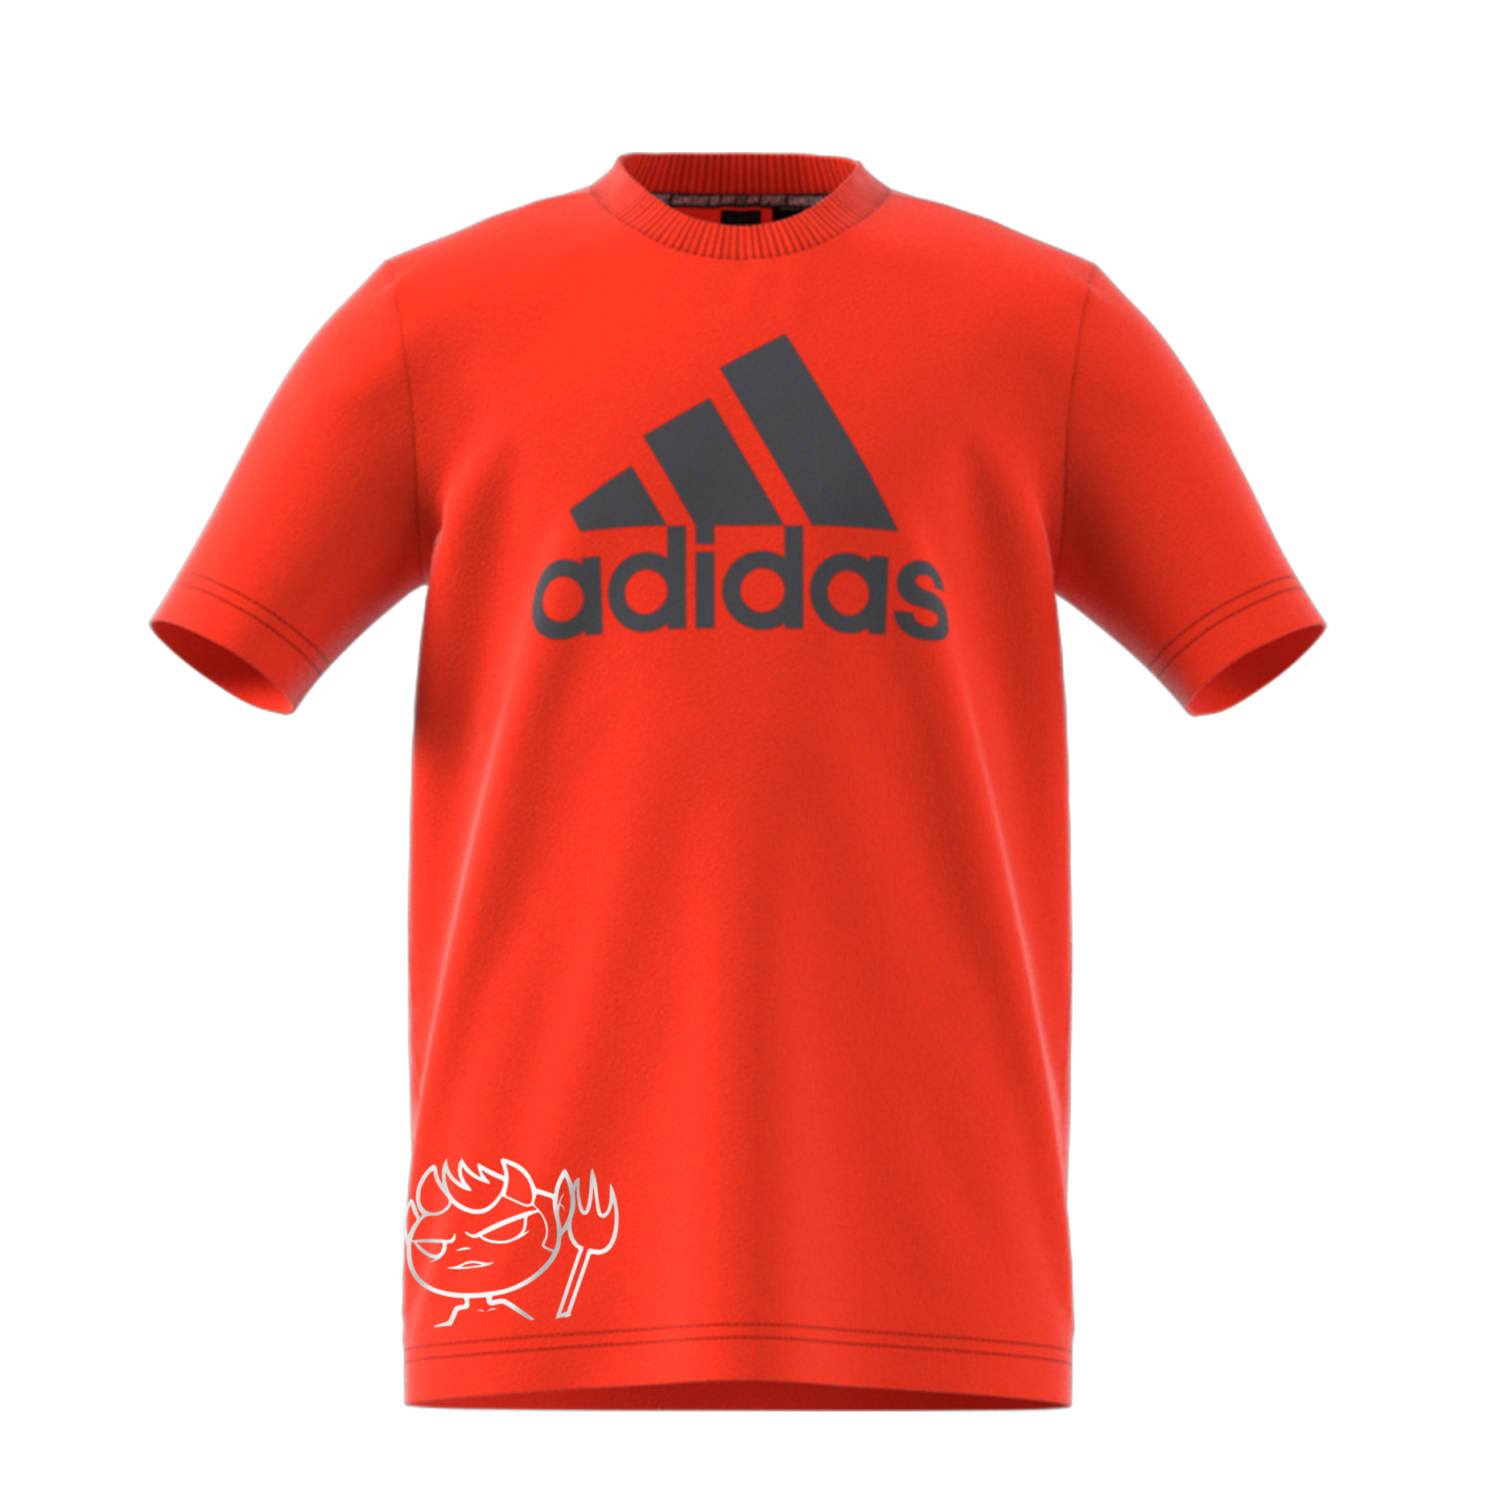 "T-SHIRT ADIDAS JUNIOR  ""LOGONE+DEVIL"" ORANGE - Virtus Entella Store"